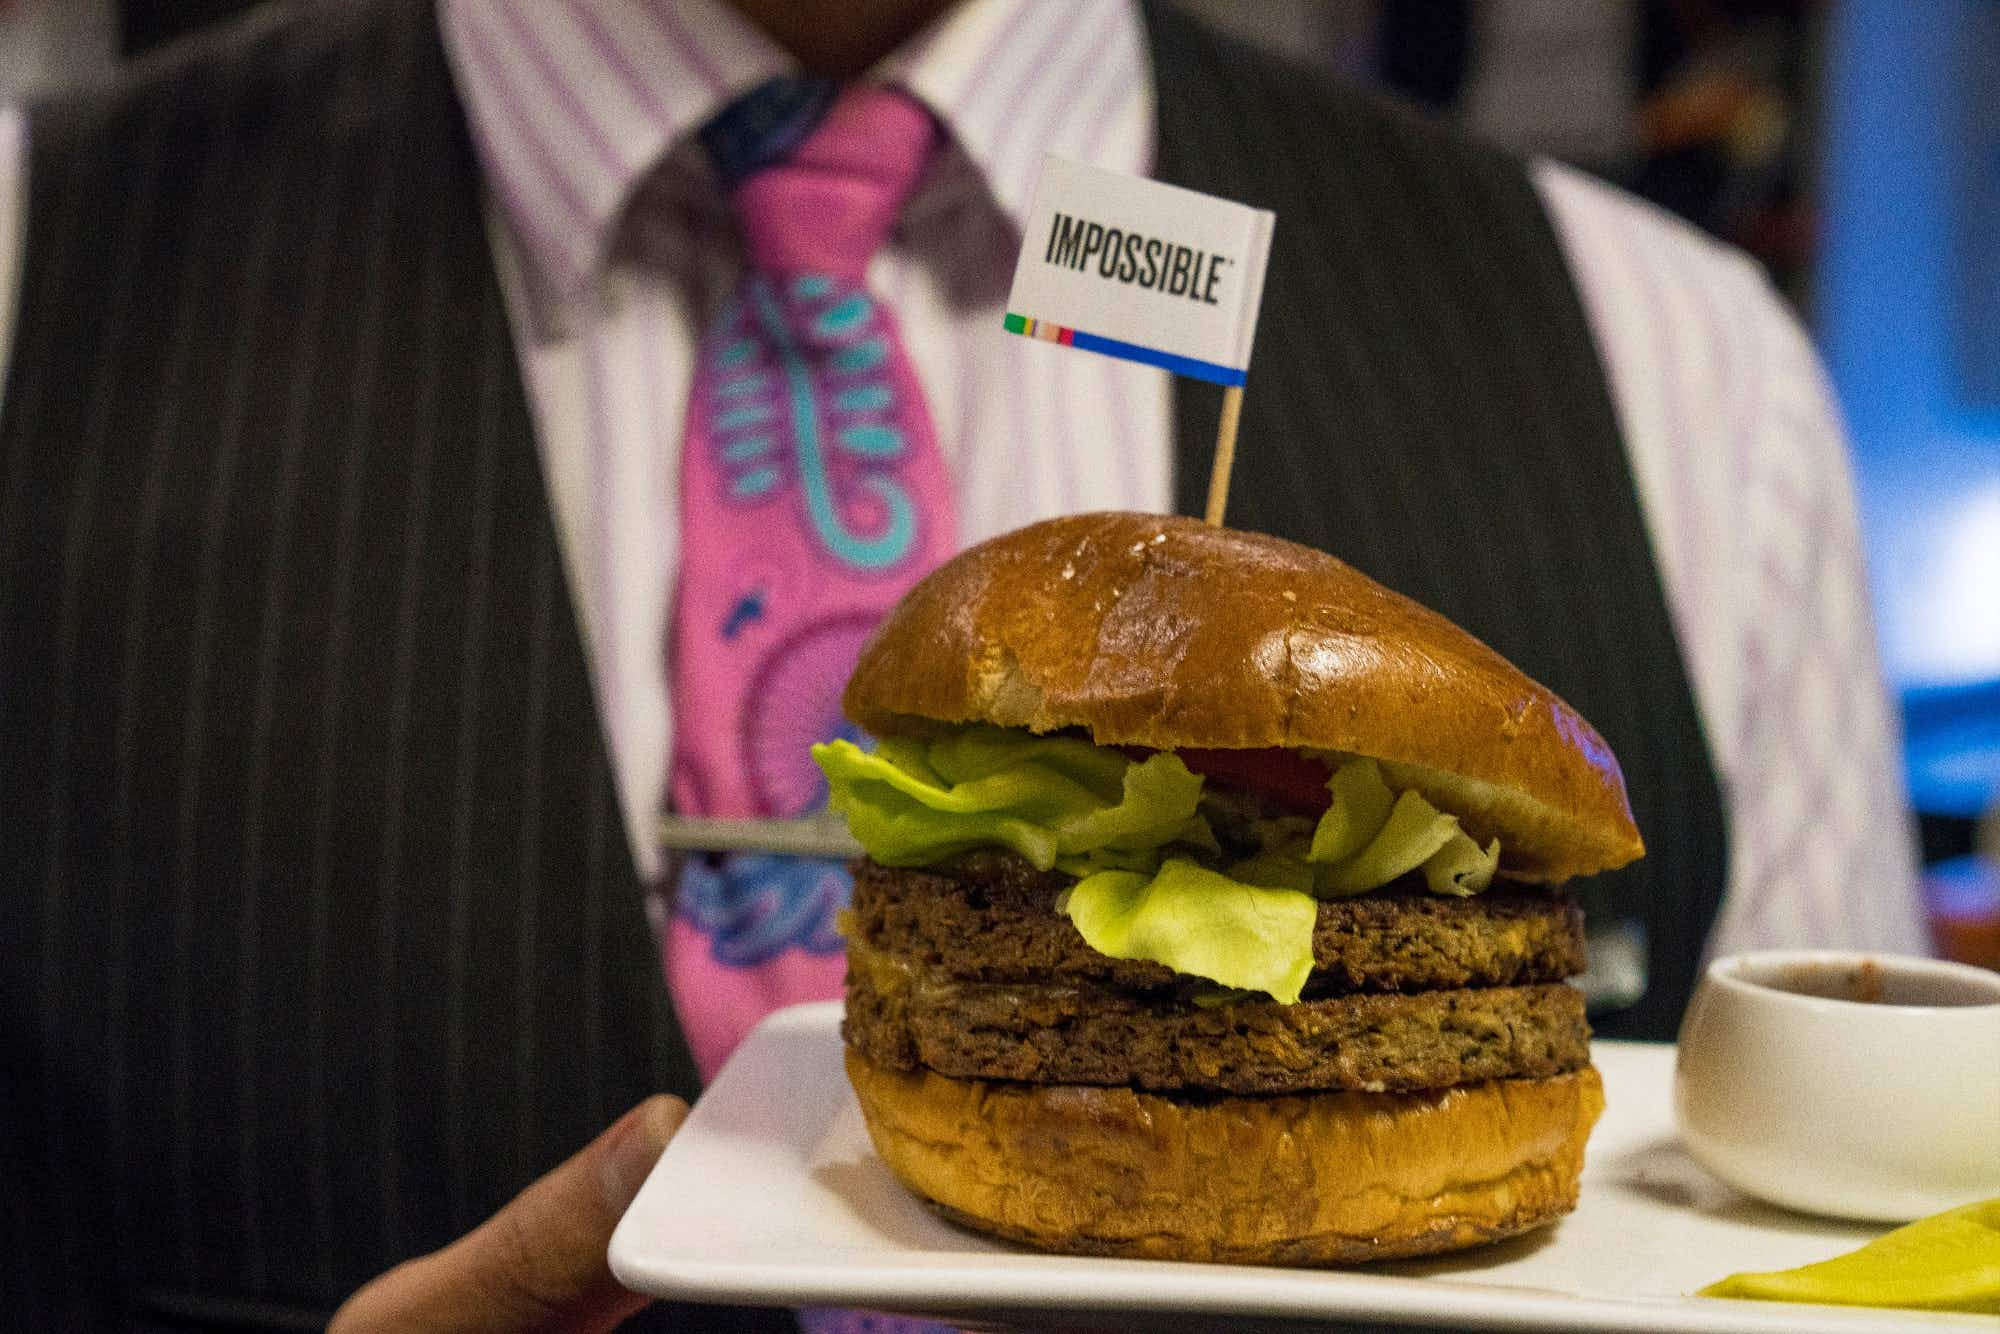 This is the first airline in the world to serve sustainable vegan burgers